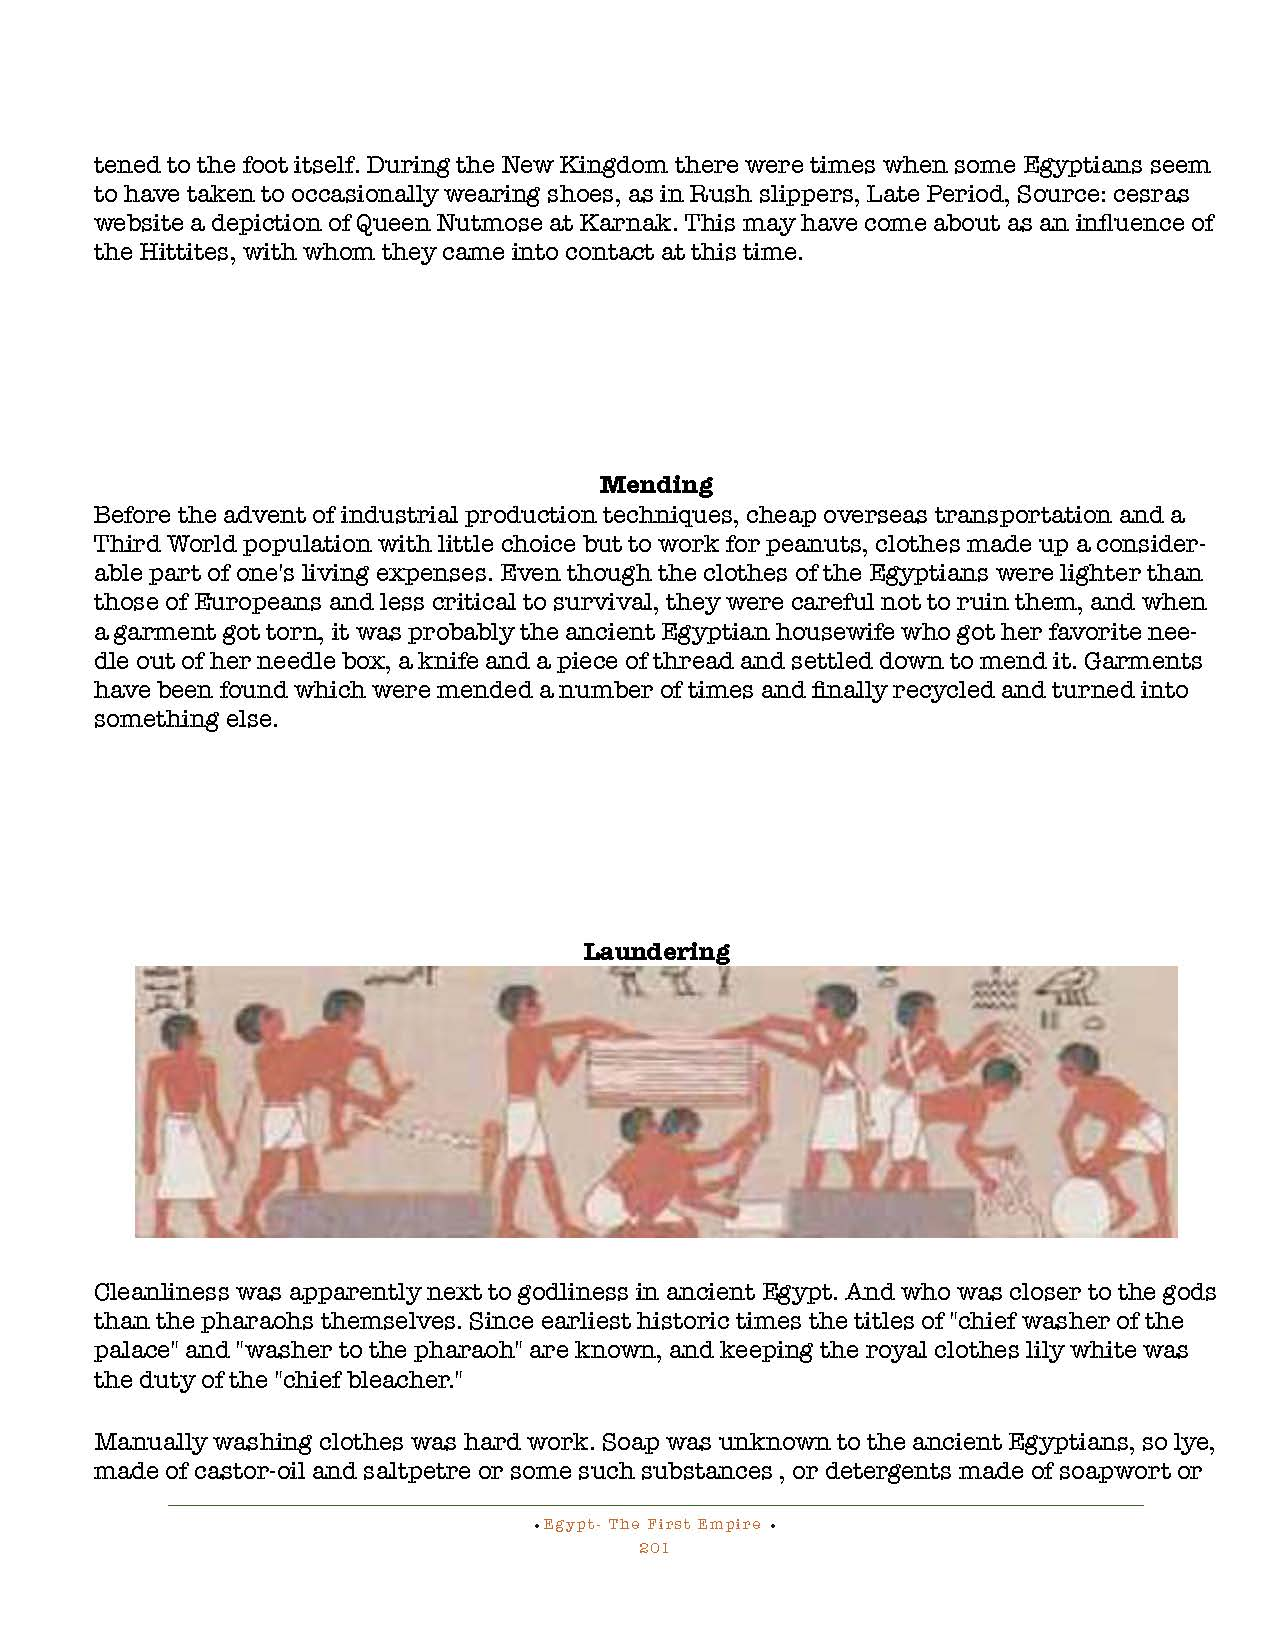 HOCE- Egypt  (First Empire) Notes_Page_201.jpg